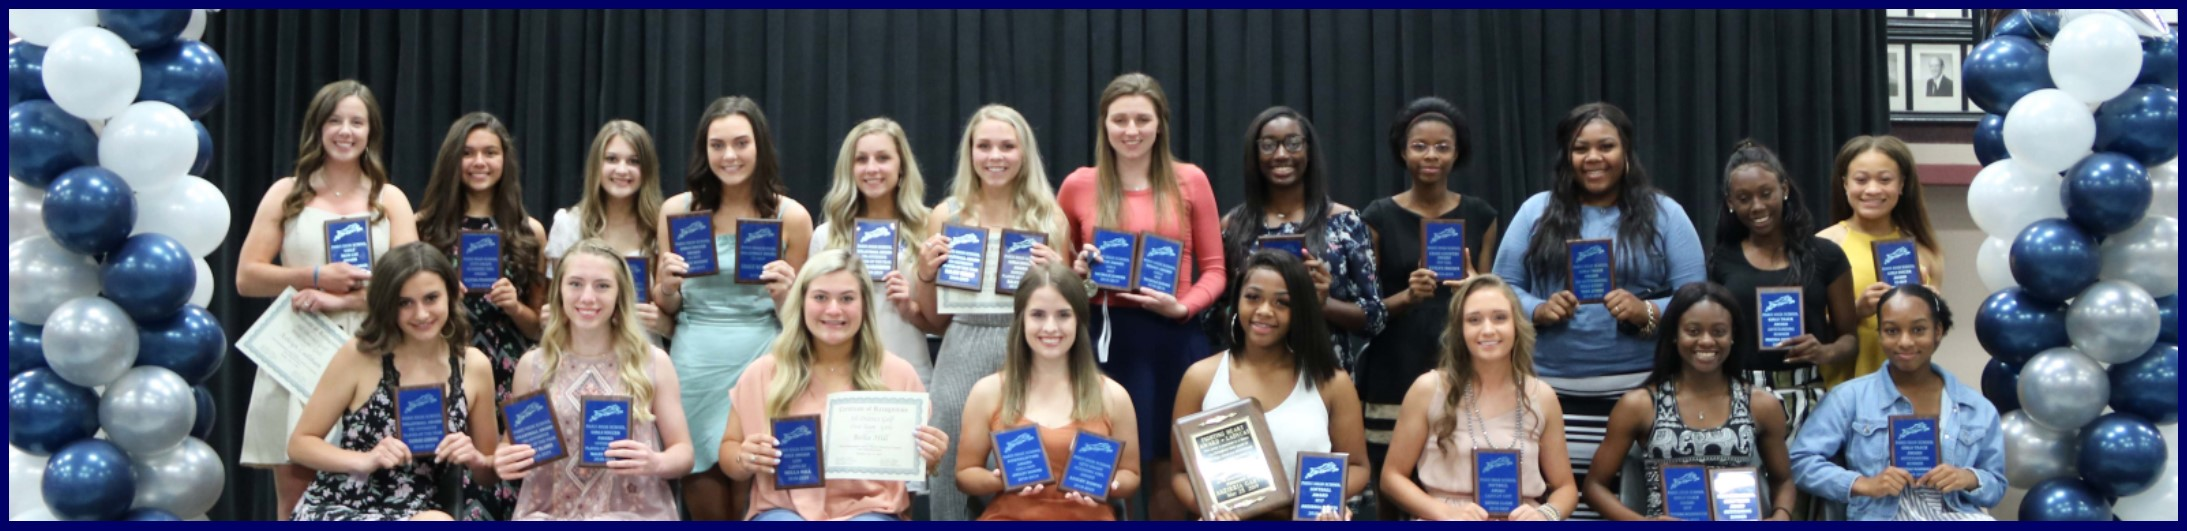 Paris High School student athletes honored - girls